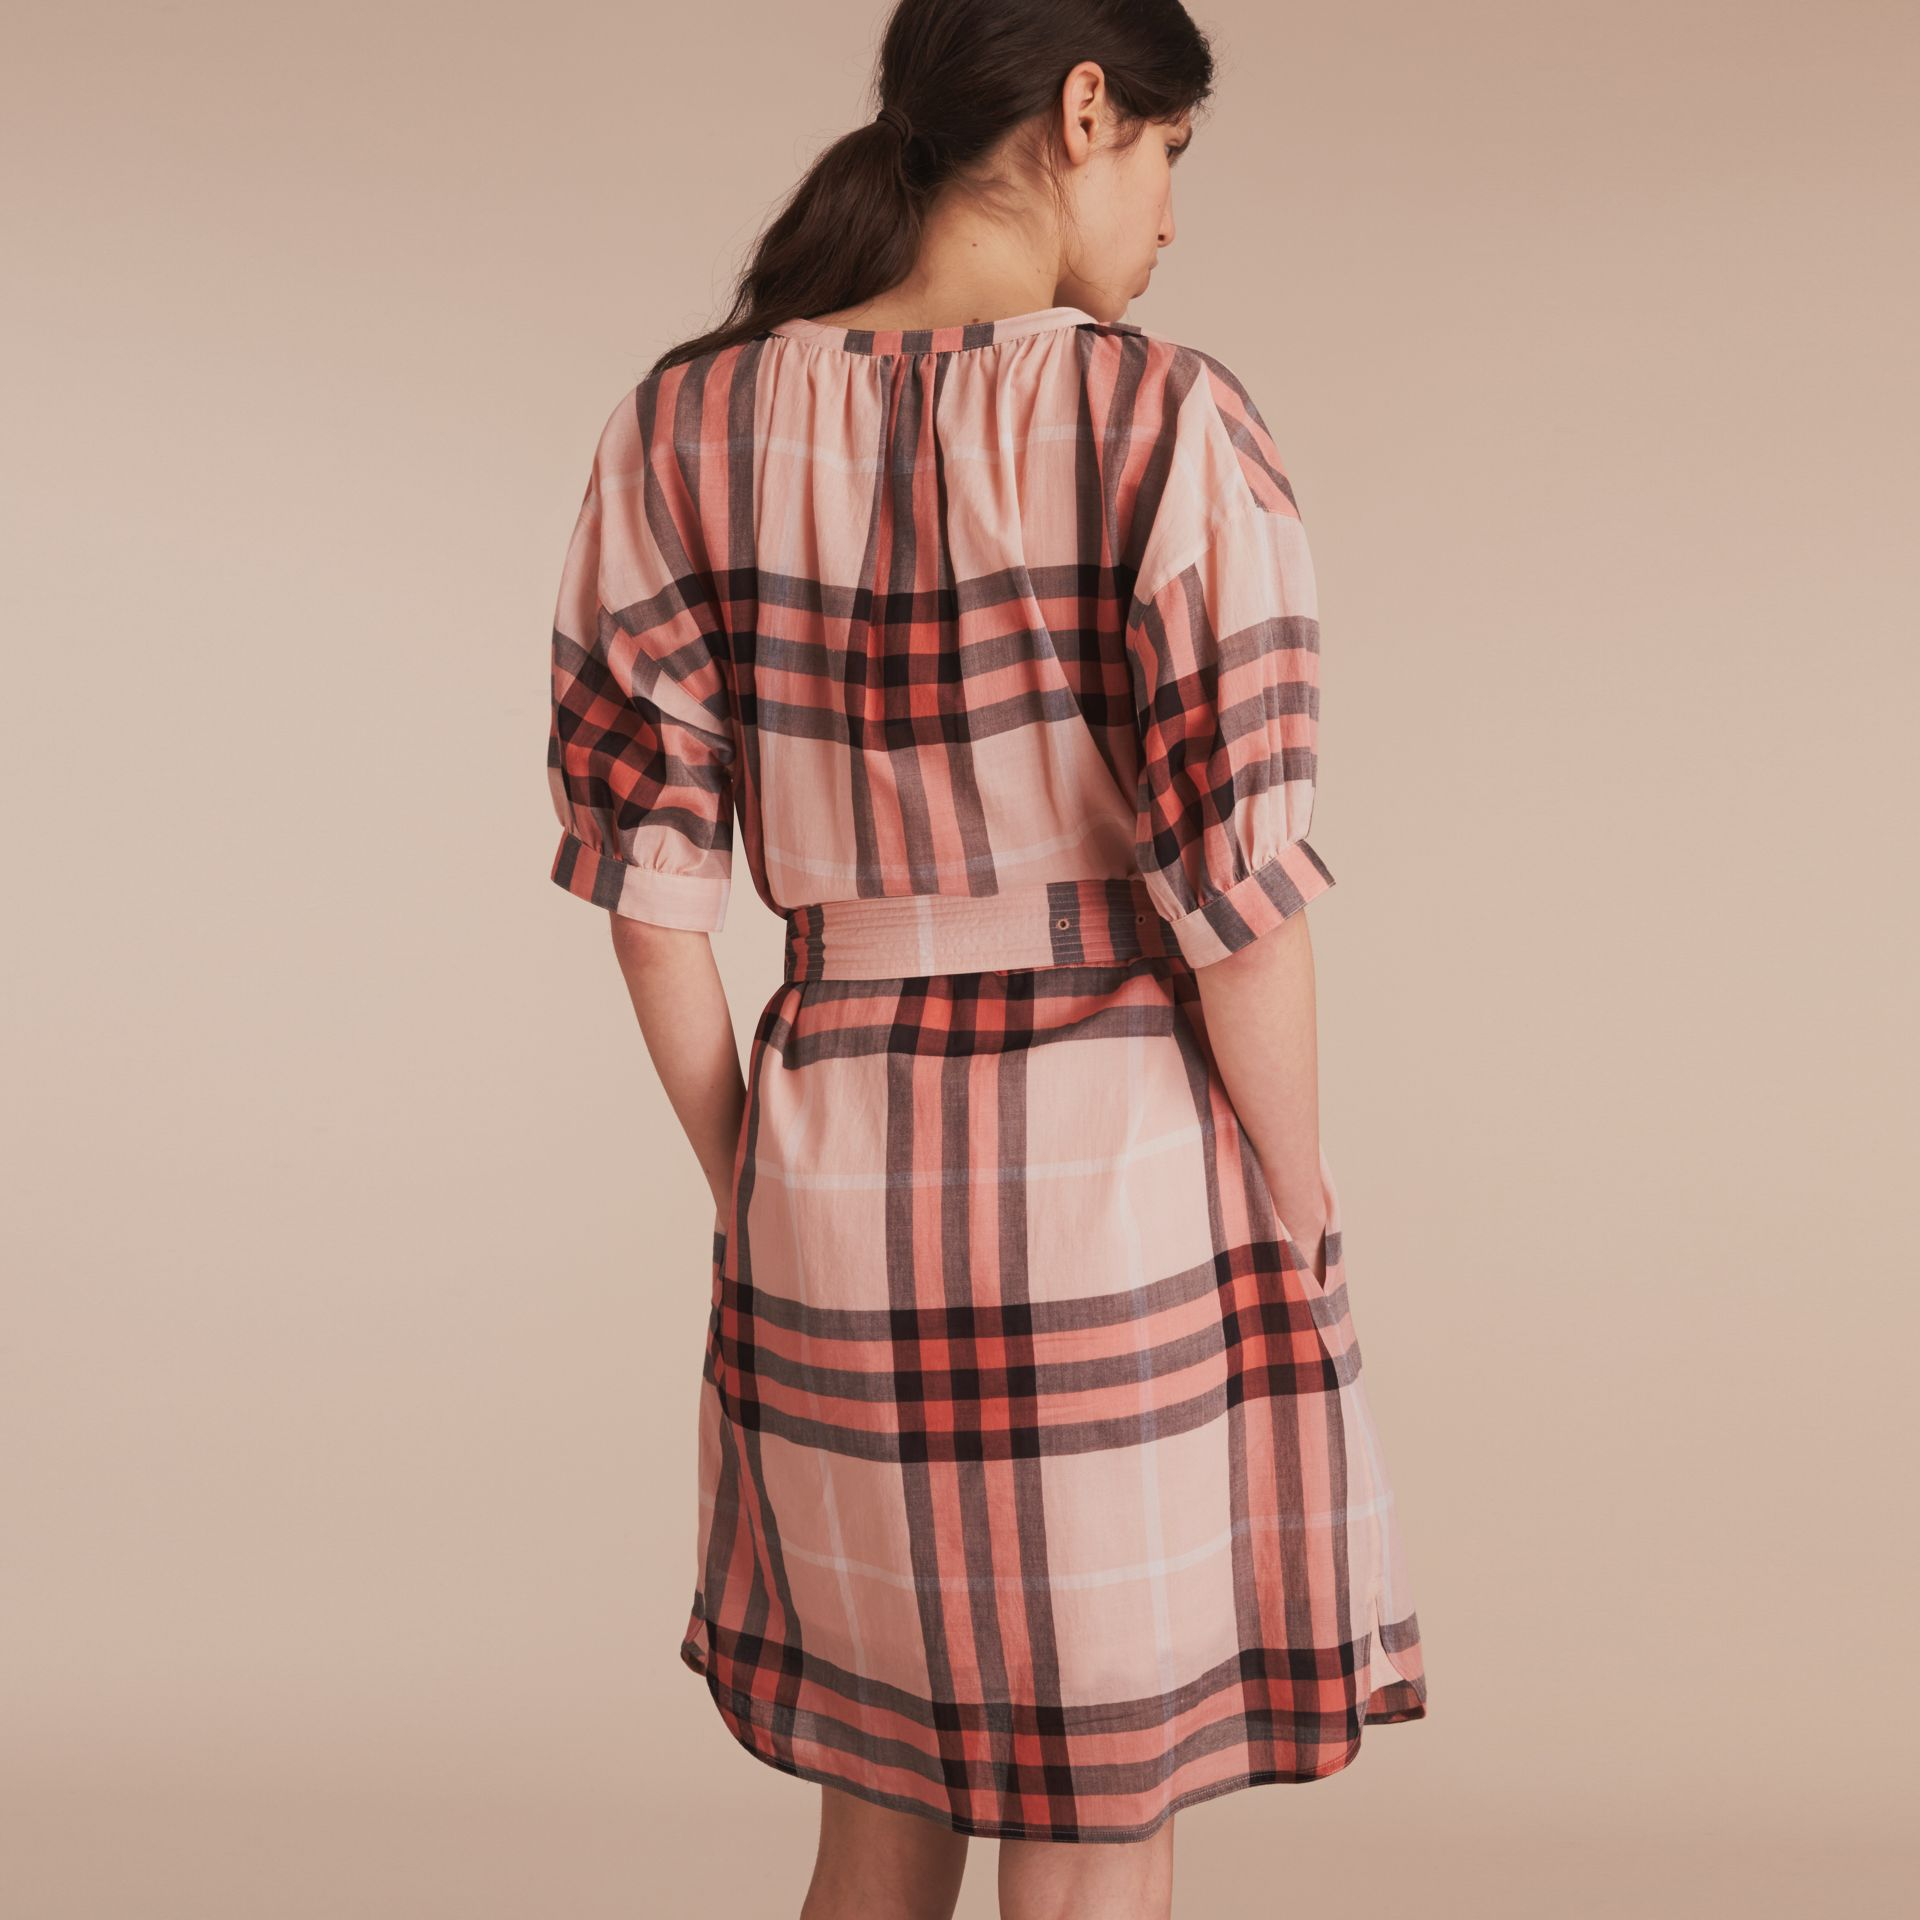 Apricot Short-sleeved Collarless Check Cotton Dress - gallery image 3